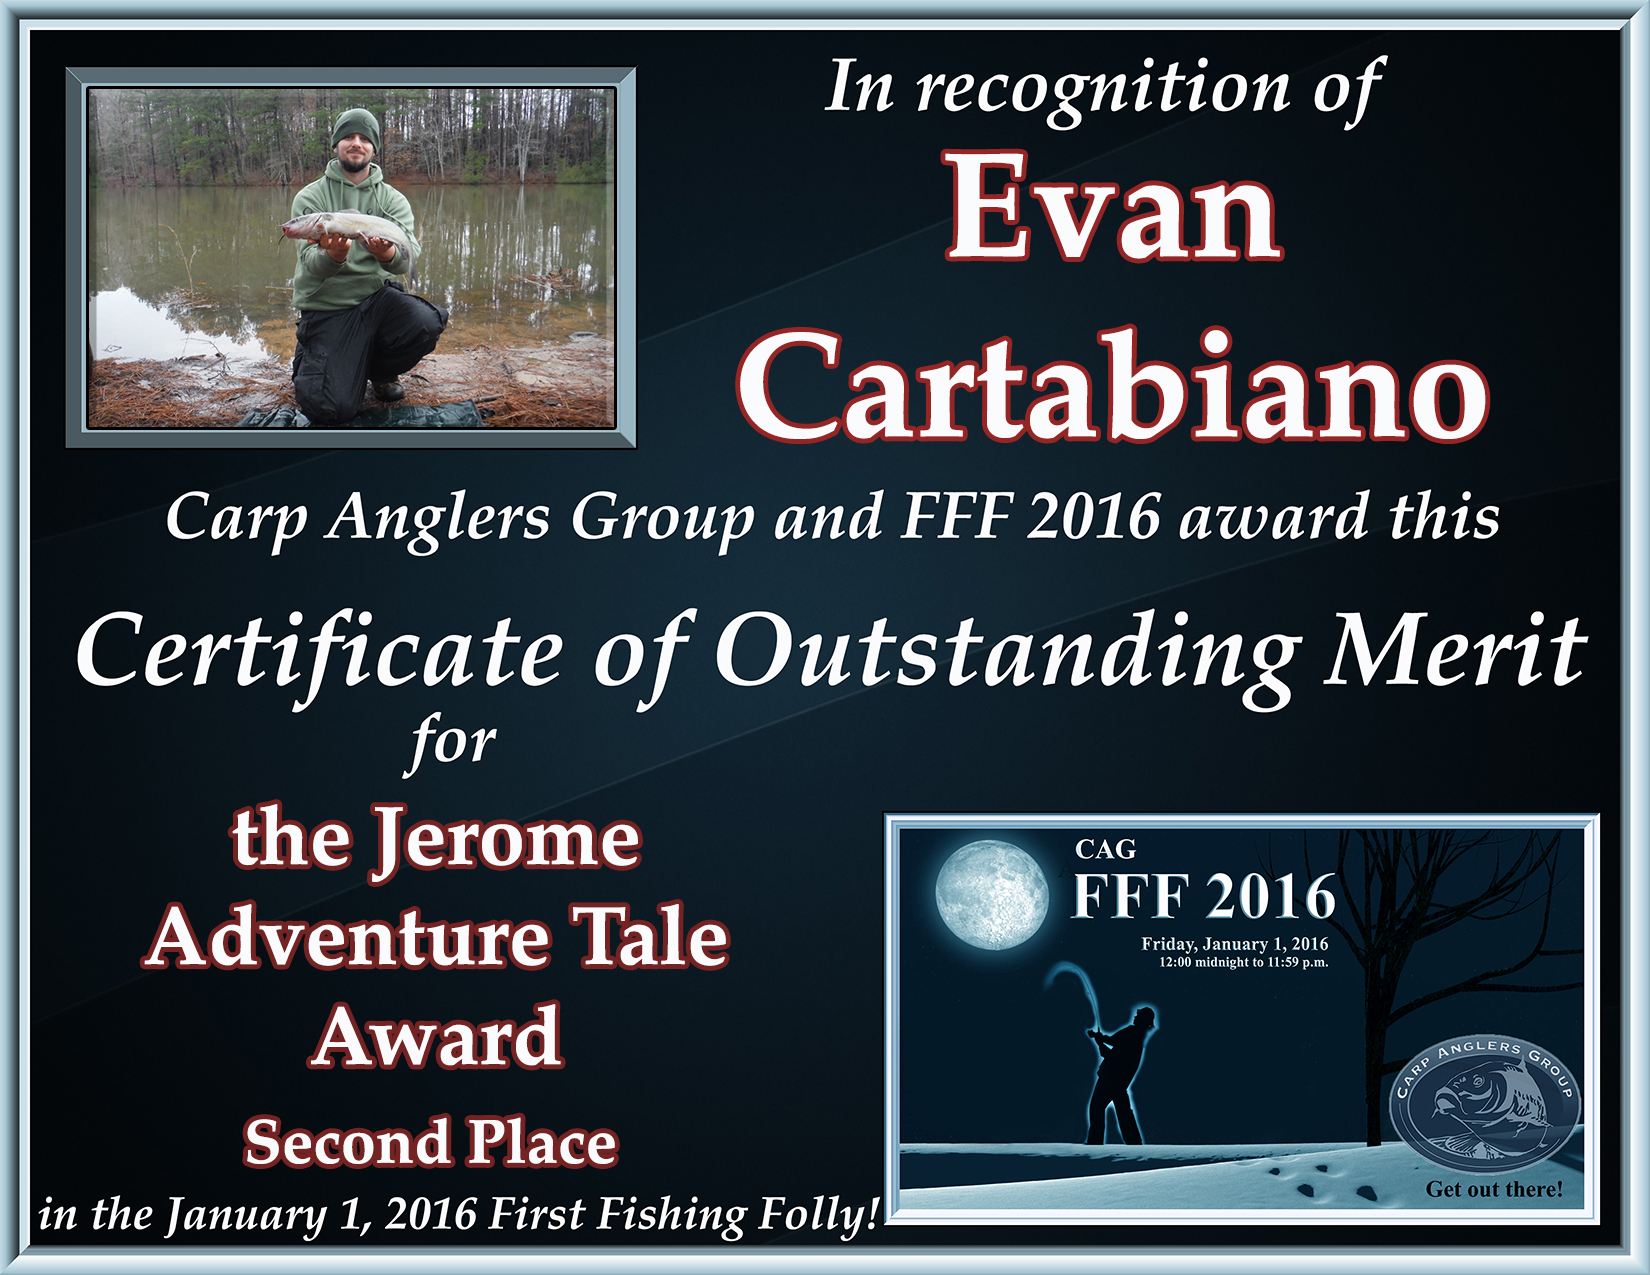 fff2016 cert jerome evan 2nd